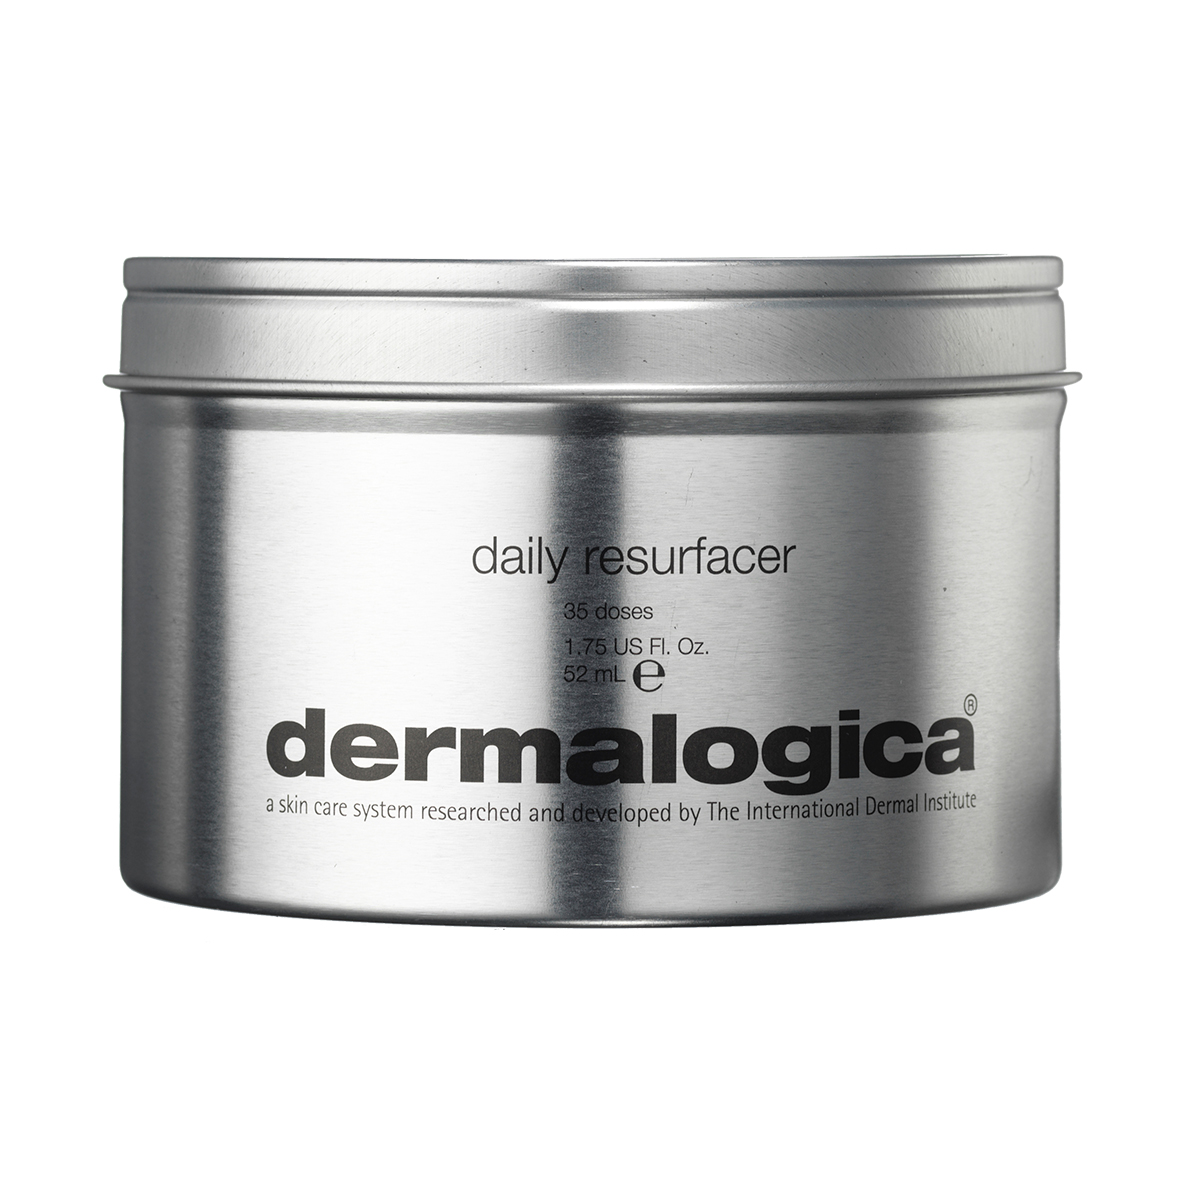 Image of   Dermalogica Daily Resurfacer - 35 stk